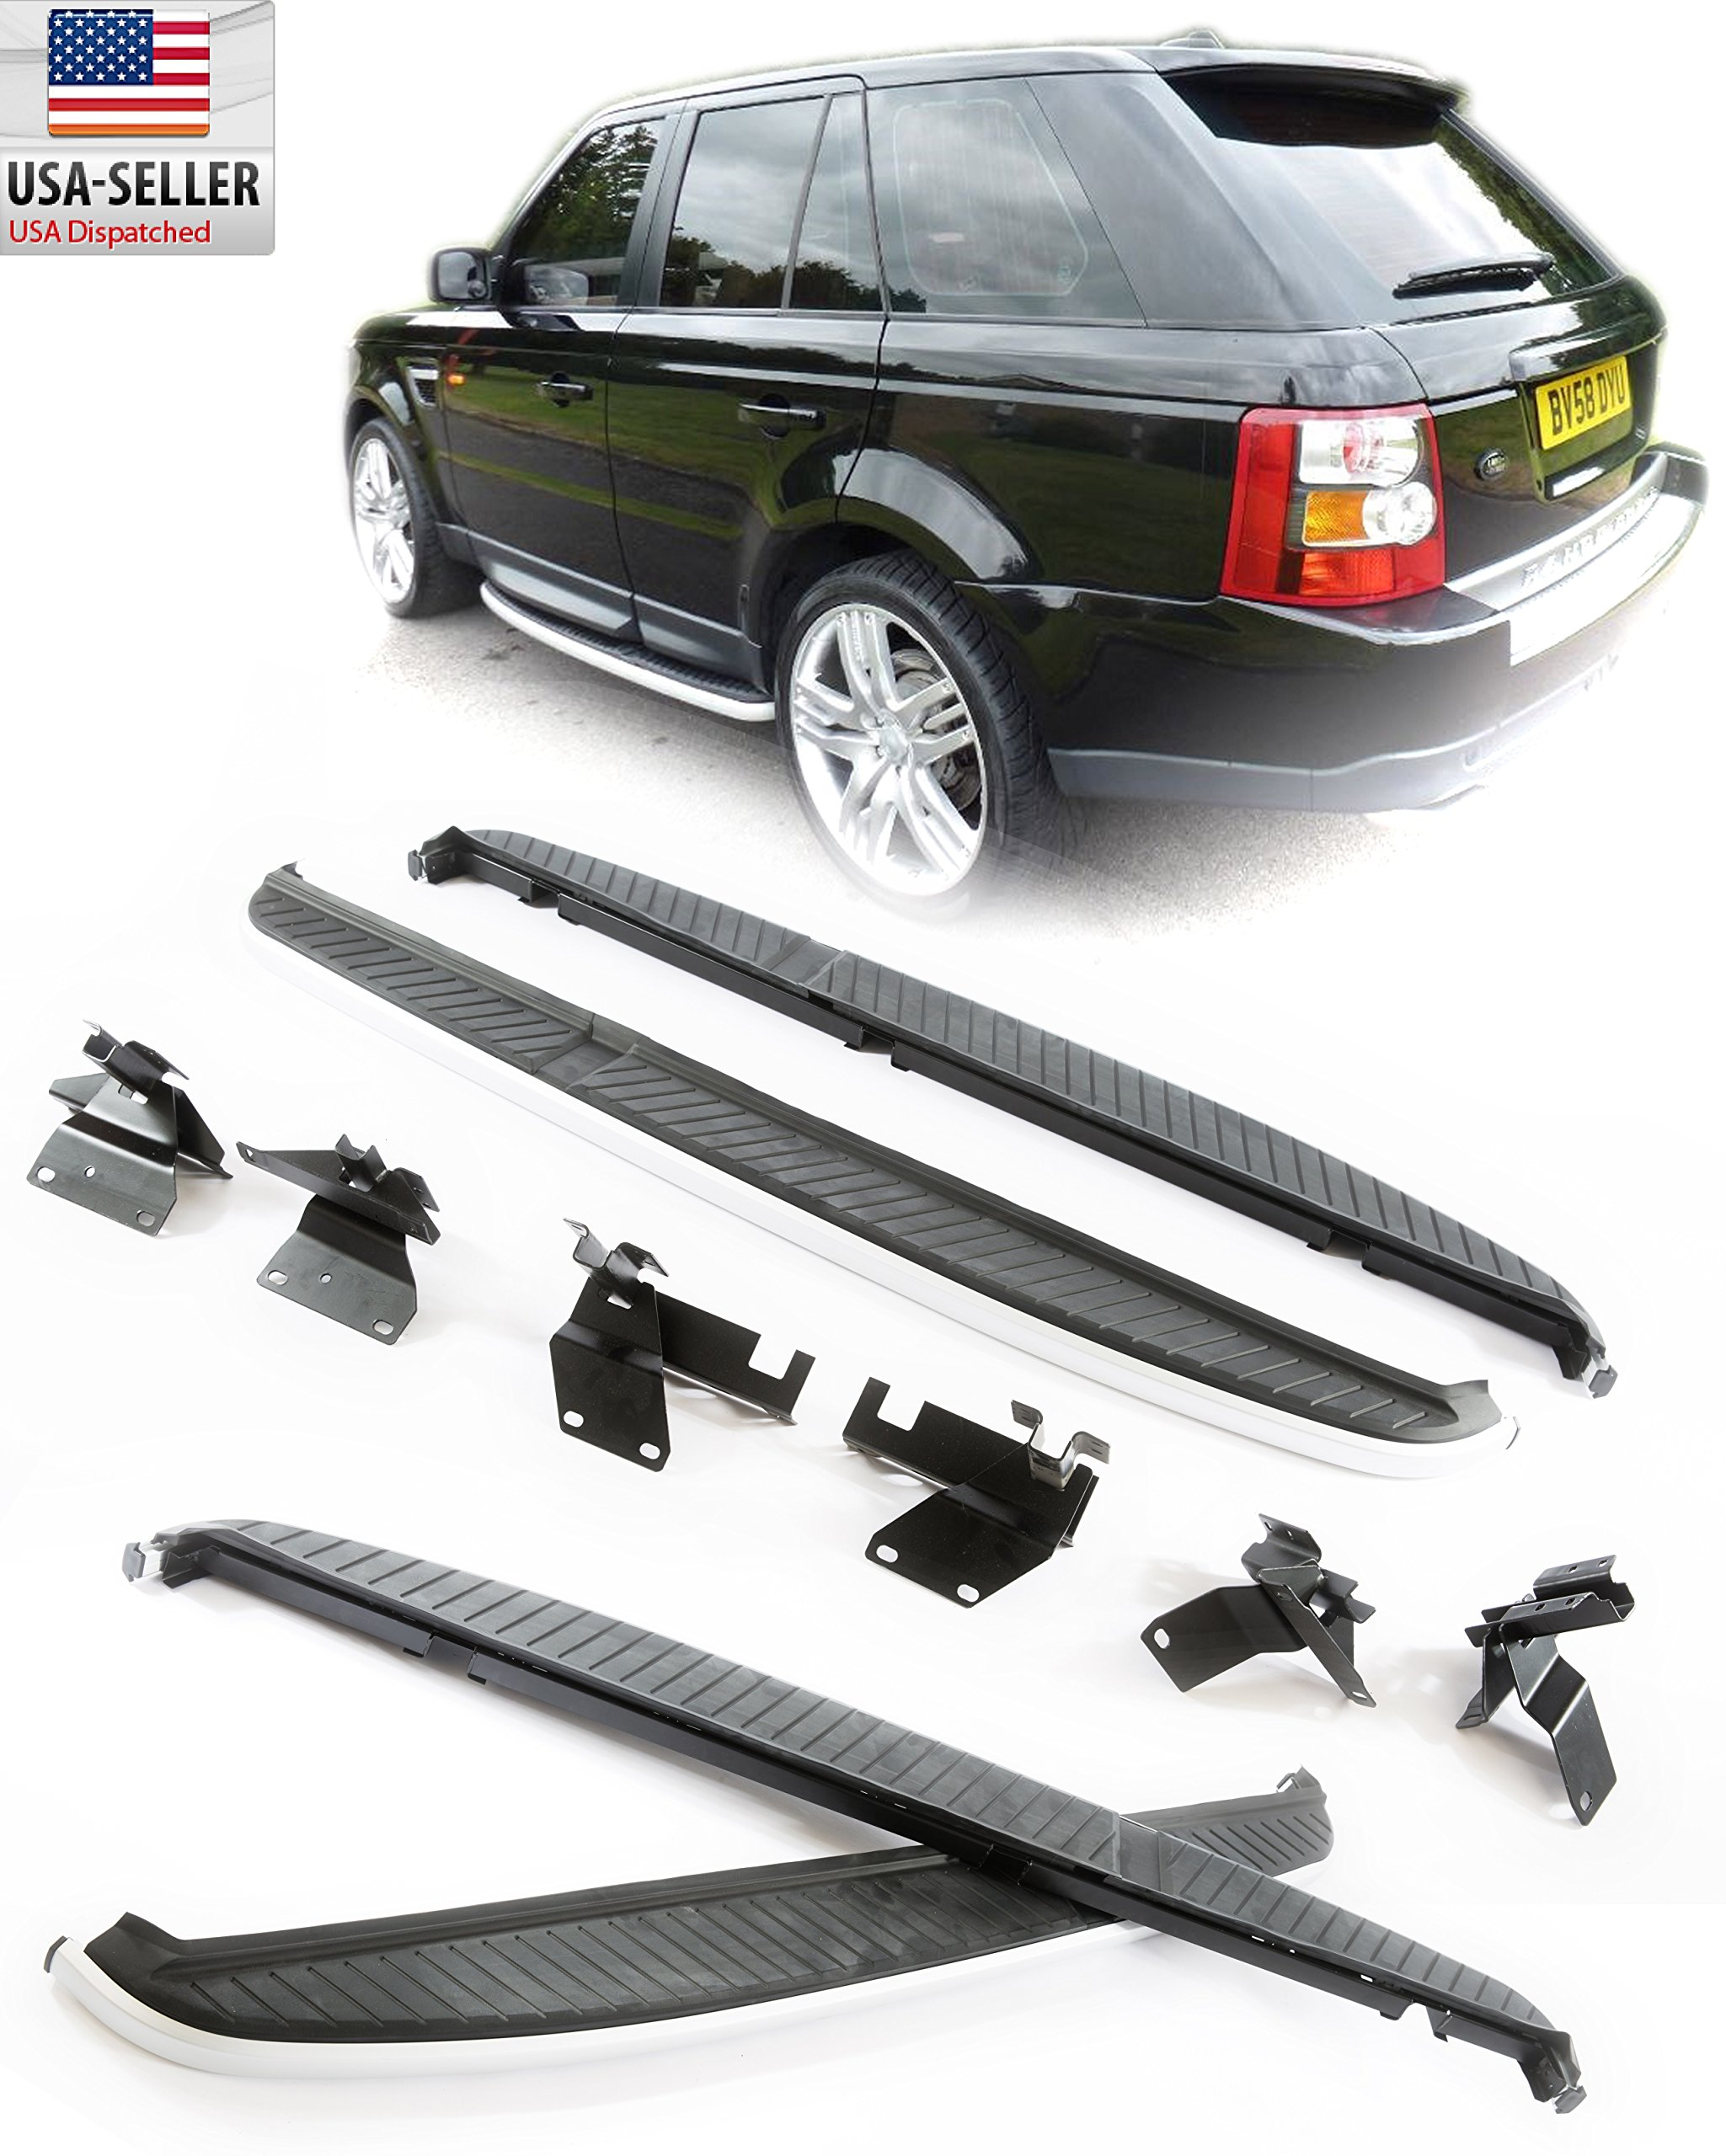 2006-2012 Land Rover Range Rover Sport Aluminum Running Board Side step Bar Bolt On (Supercharged Sport) ONLY 2006 2007 2008 2009 2010 2011 2012